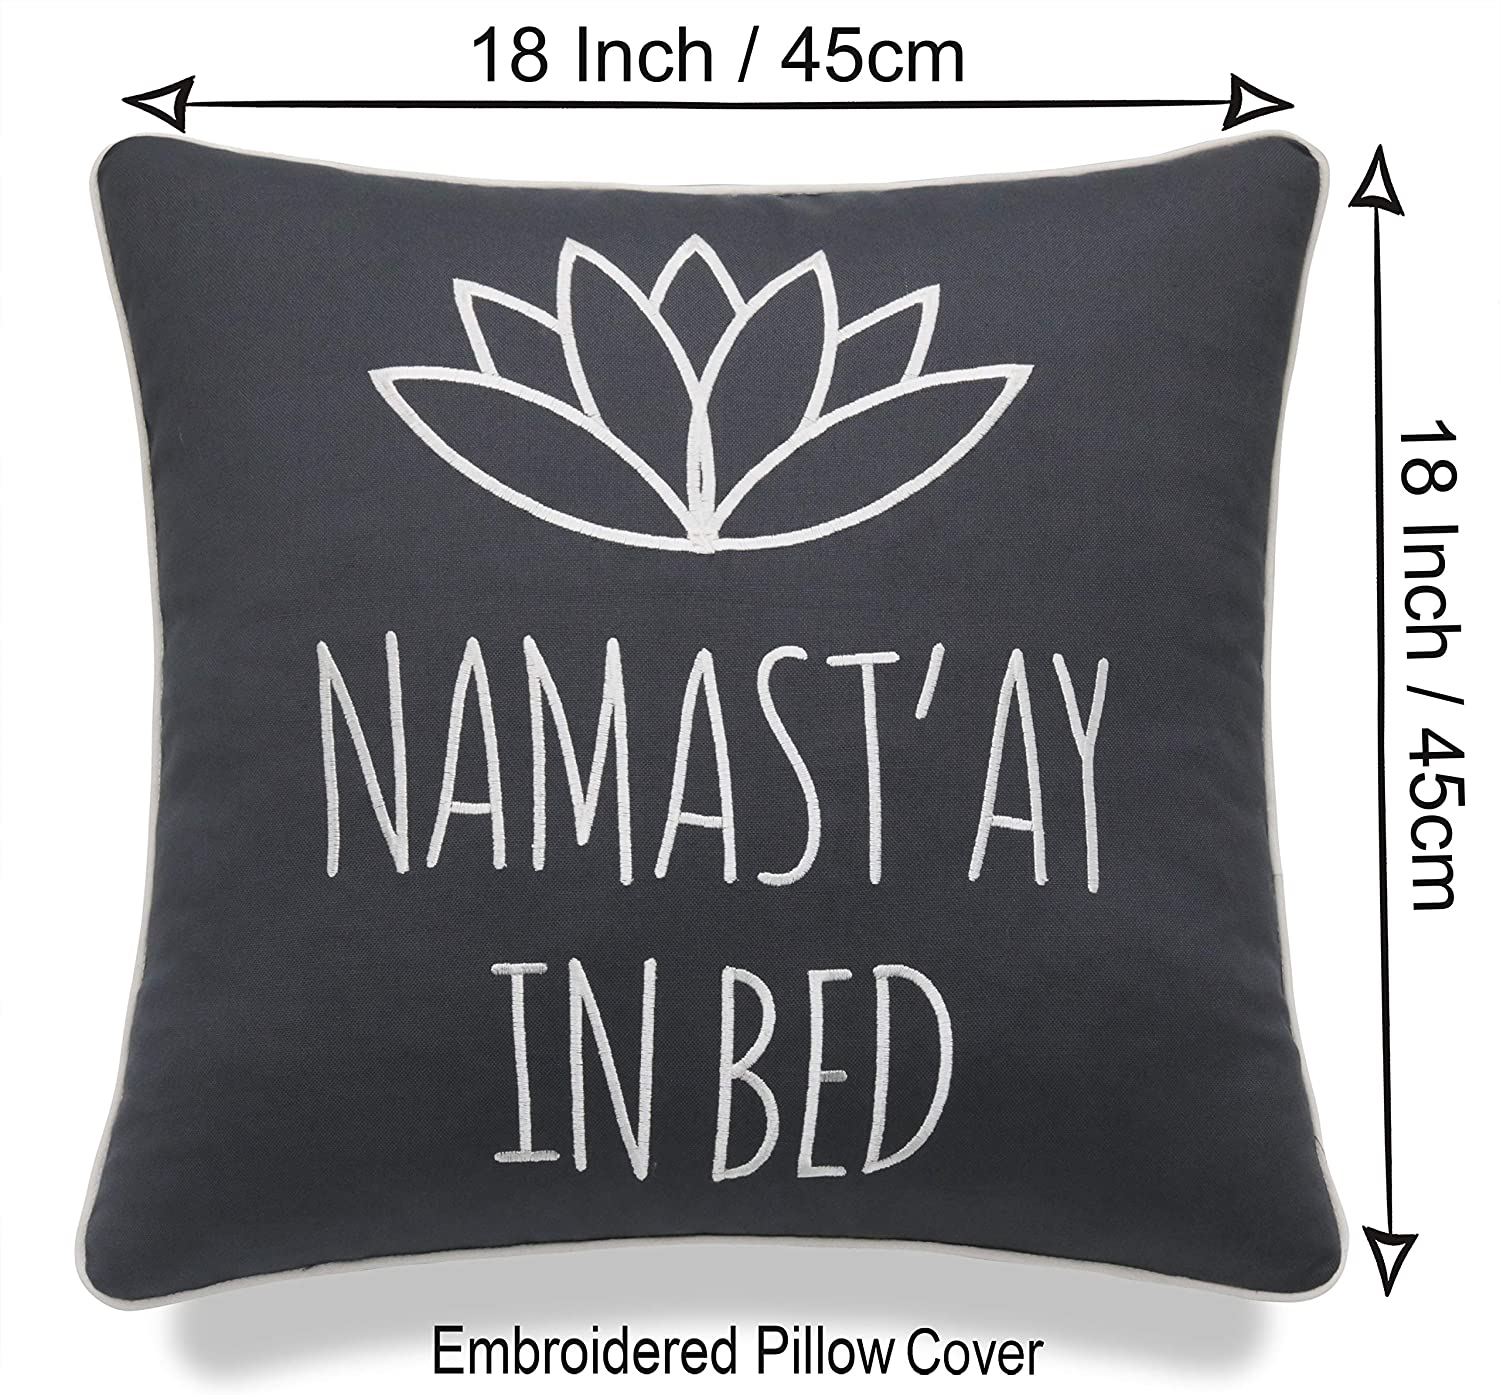 Amazon Com Yugtex Namastay In Bed Decorative Embroidered Accent Throw Pillow Cover For Bedroom 18x18 Inches Dark Grey Home Kitchen